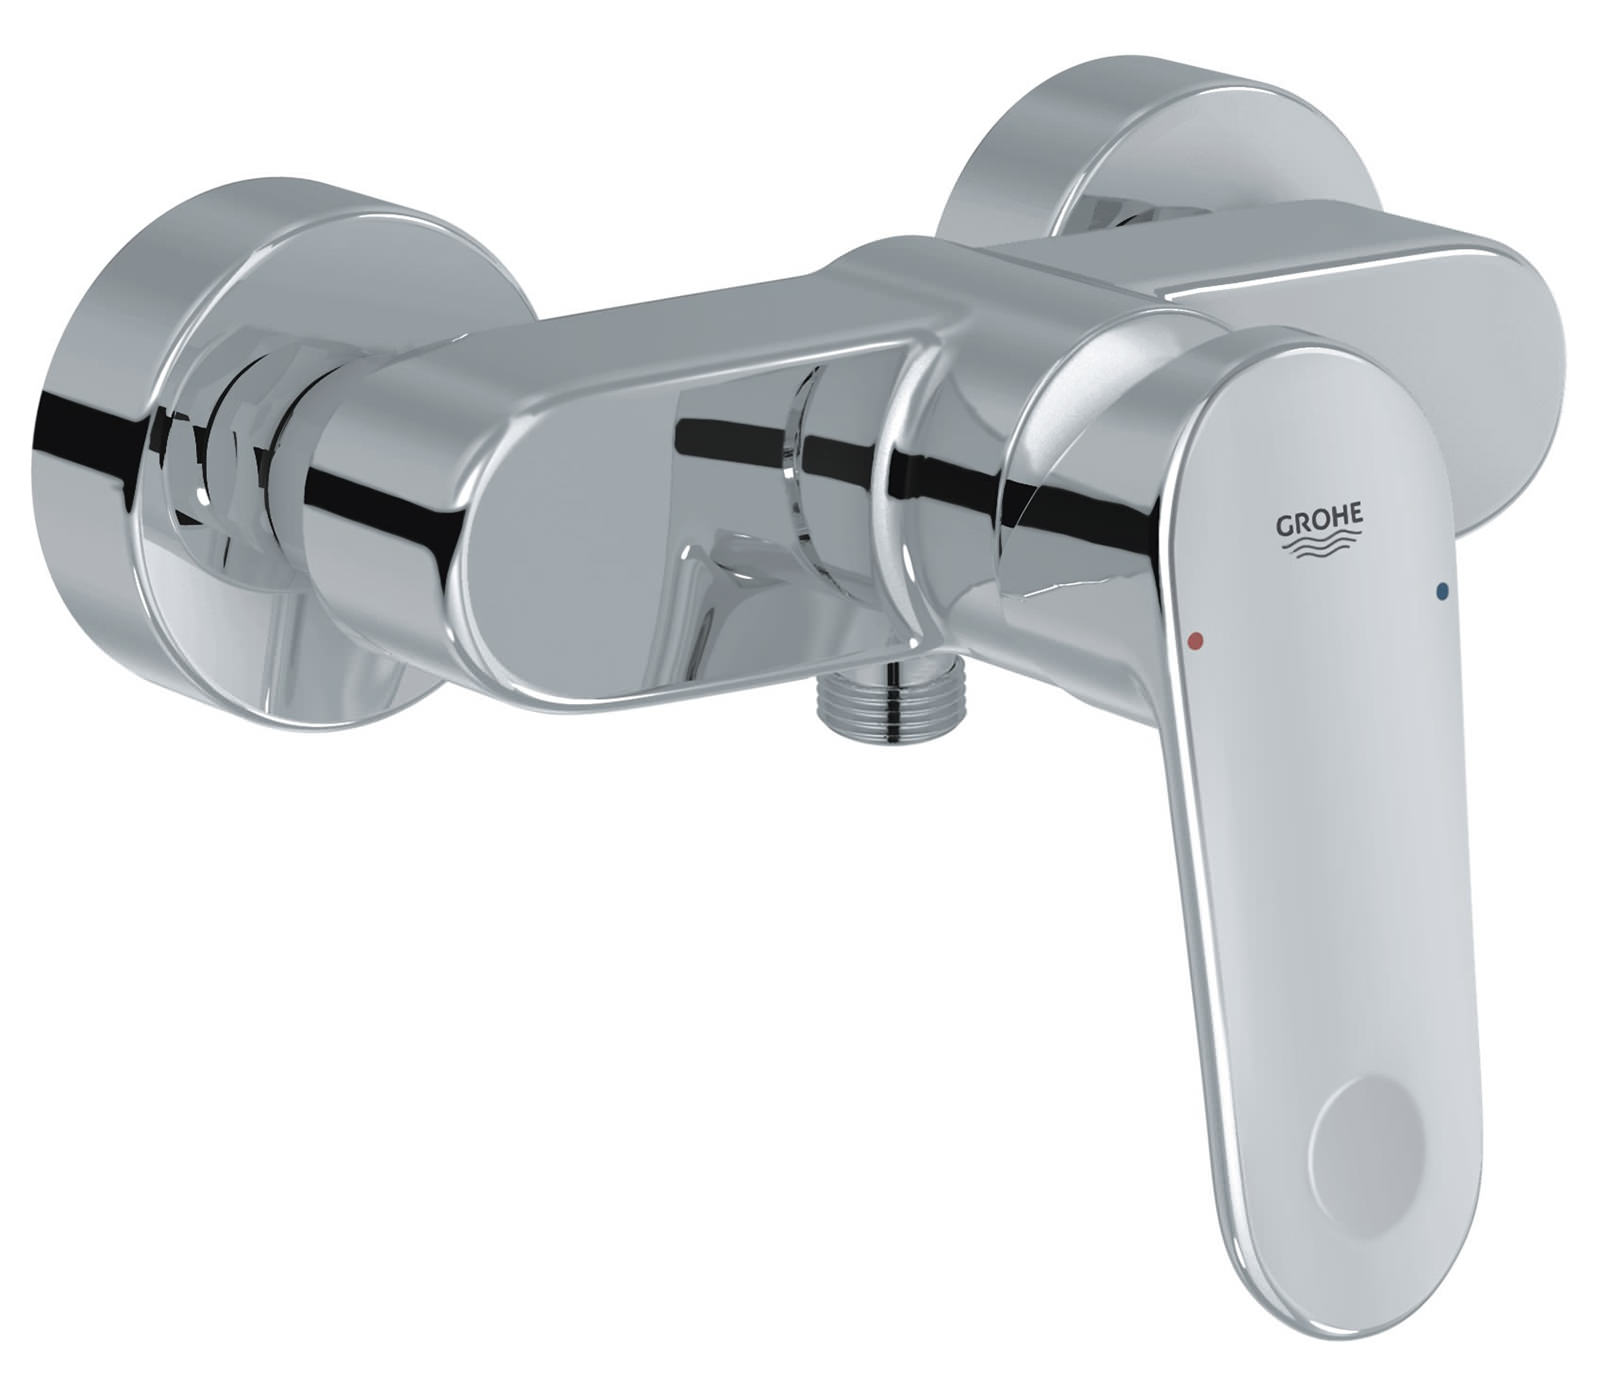 Grohe Europlus Wall Mounted Single Lever Shower Mixer Valve 33577002